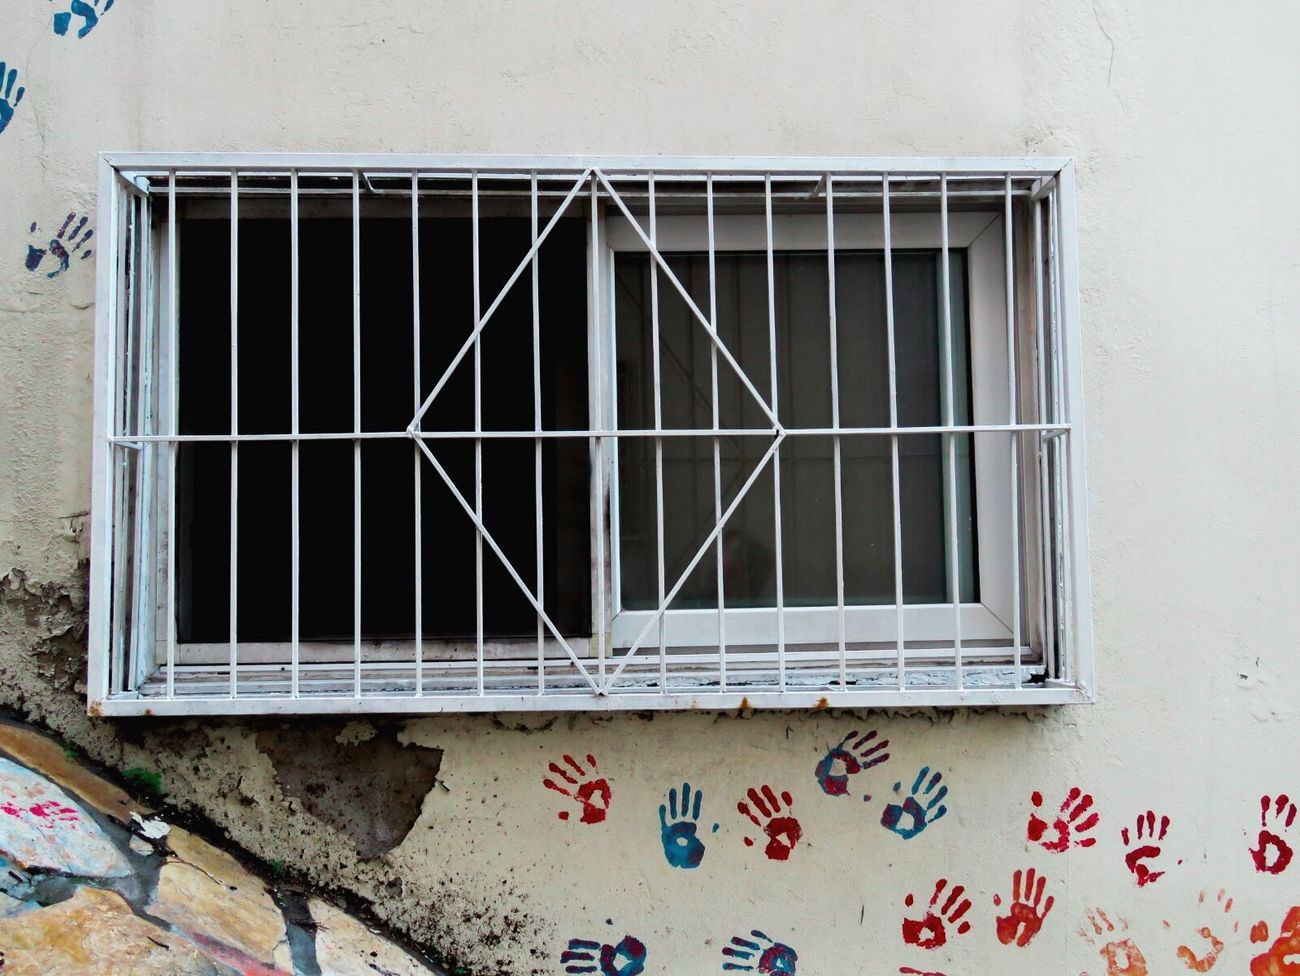 Urban Taking Photos Winter Wall Sunny Day Check This Out Izmir Sunnyday Urban Geometry EyeEm Best Shots EyeEm Gallery Duvar Colors Hand OpenEdit Window Pencere HandPainted Handprint White Beyaz EyeEm Best Edits EyeEm Eyeemphotography Grate